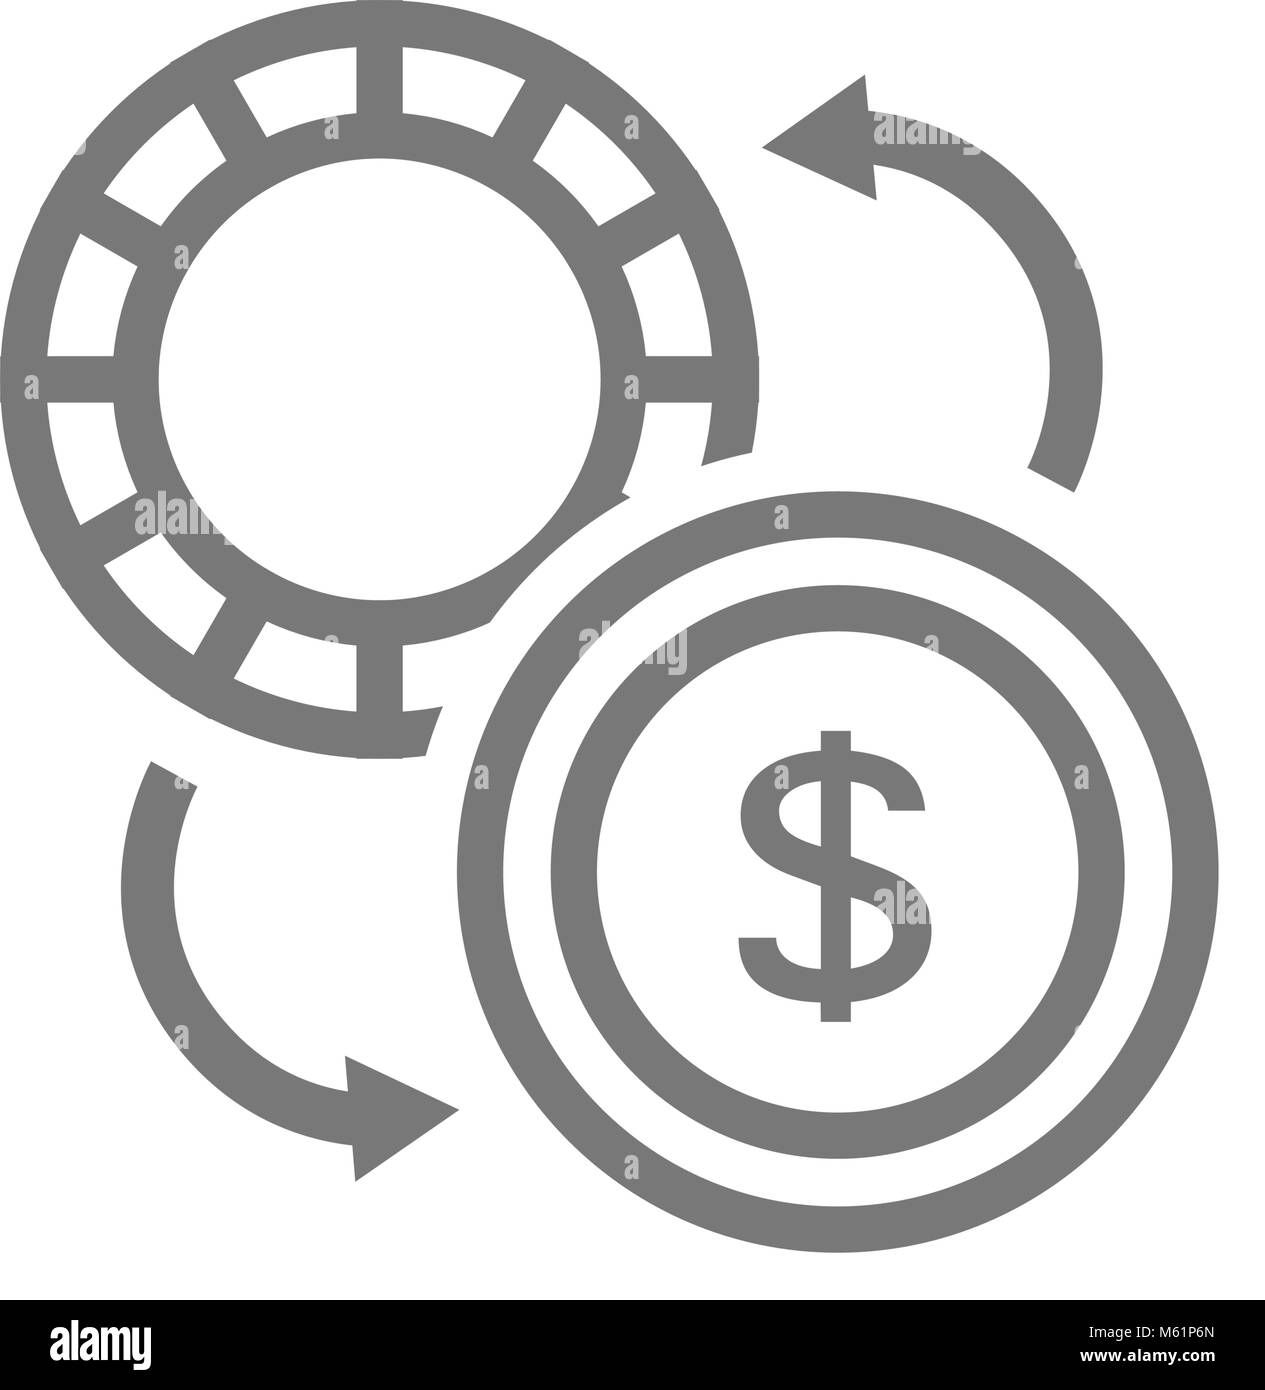 Simple Currency Converter Line Icon Symbol And Sign Vector Stock